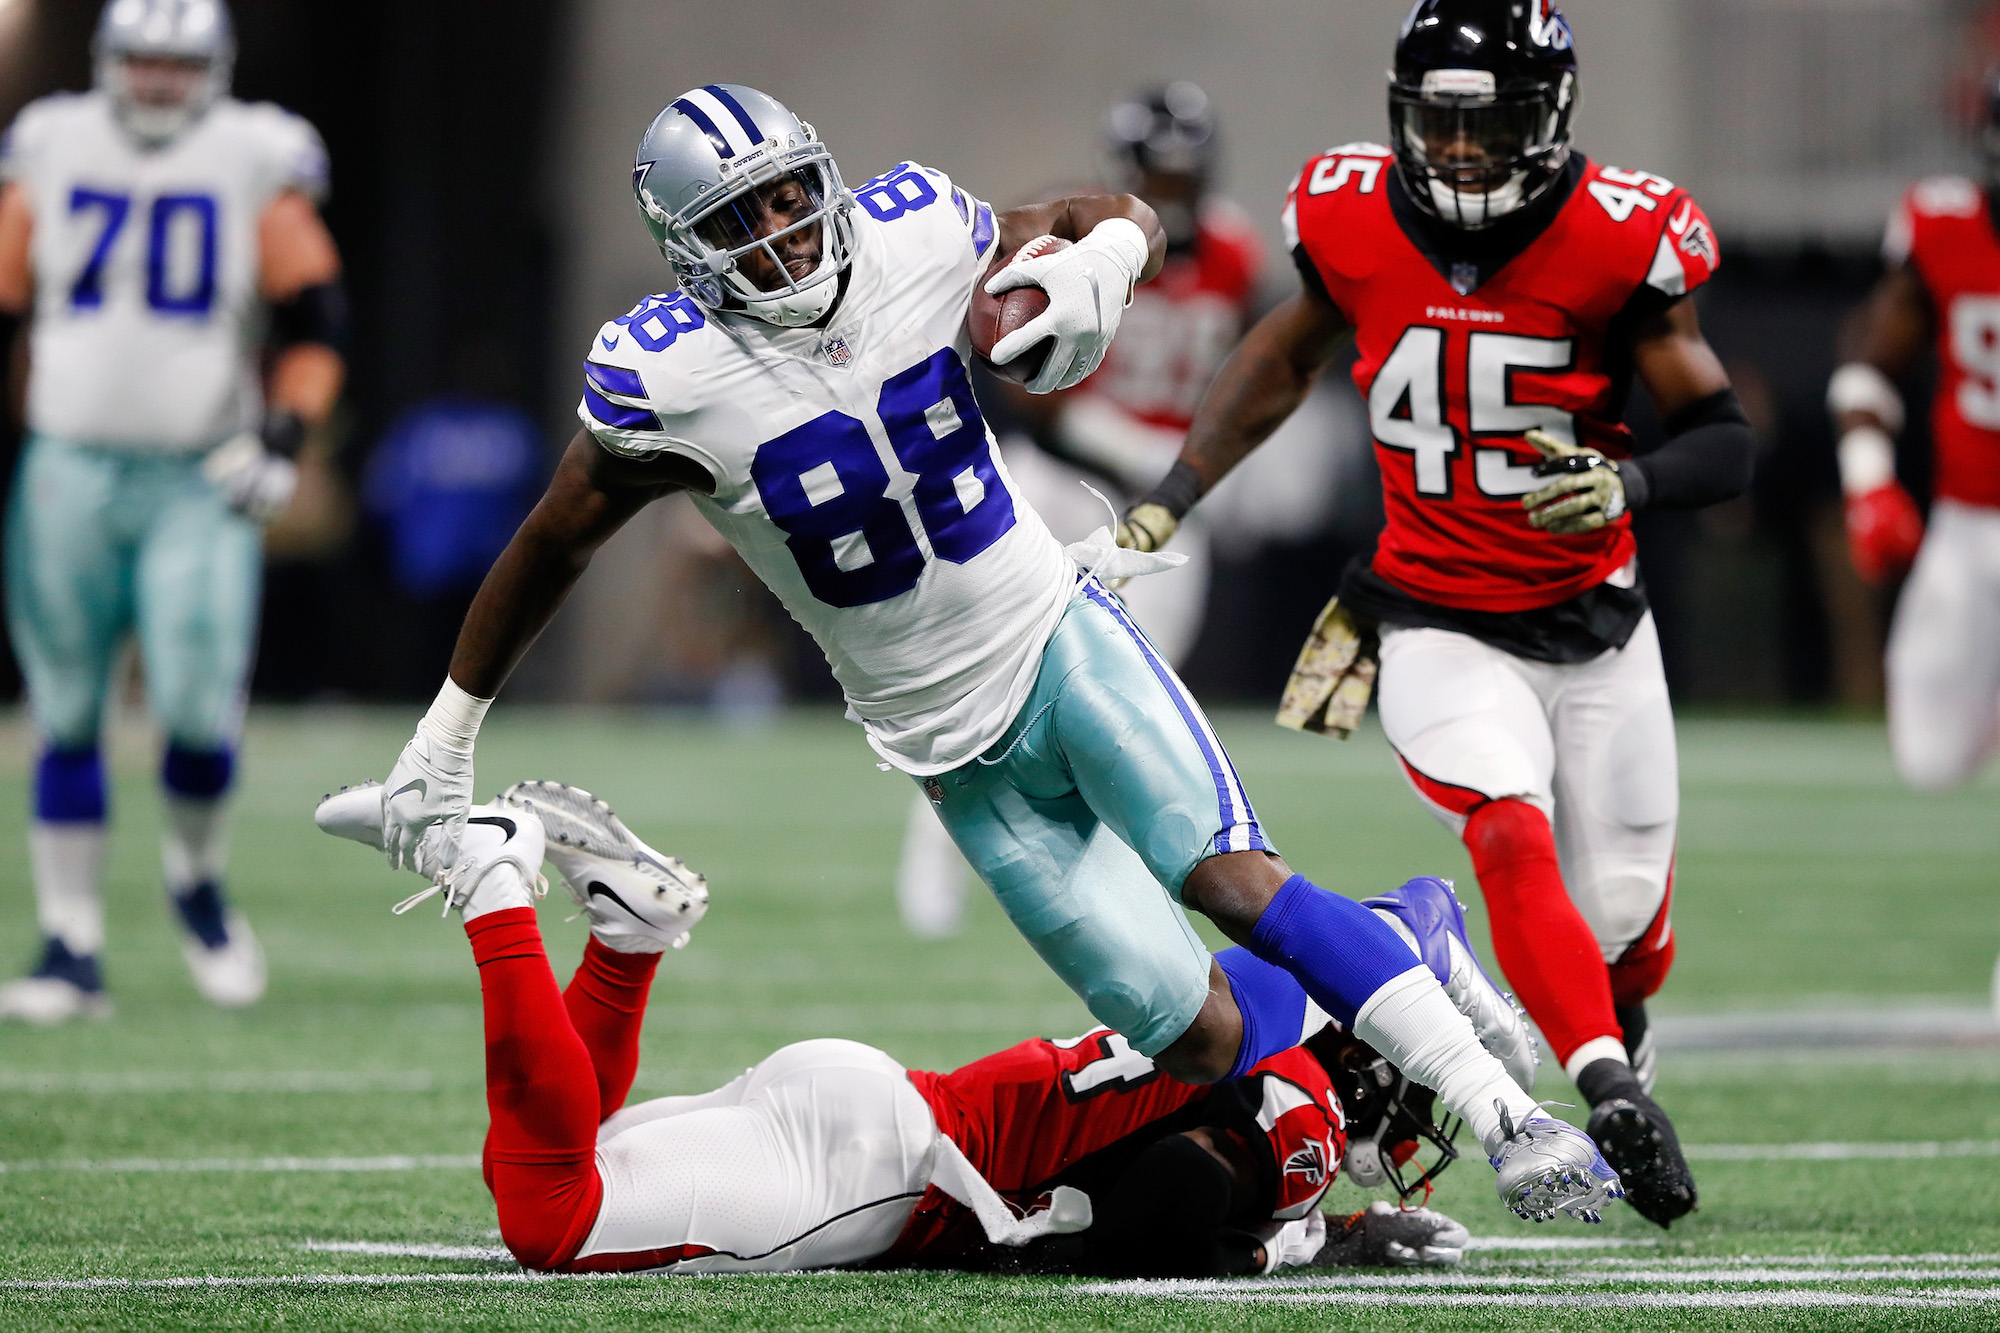 Long before joining the Dallas Cowboys, Dez Bryant had to steal a helmet and shoulder pads just to play football.